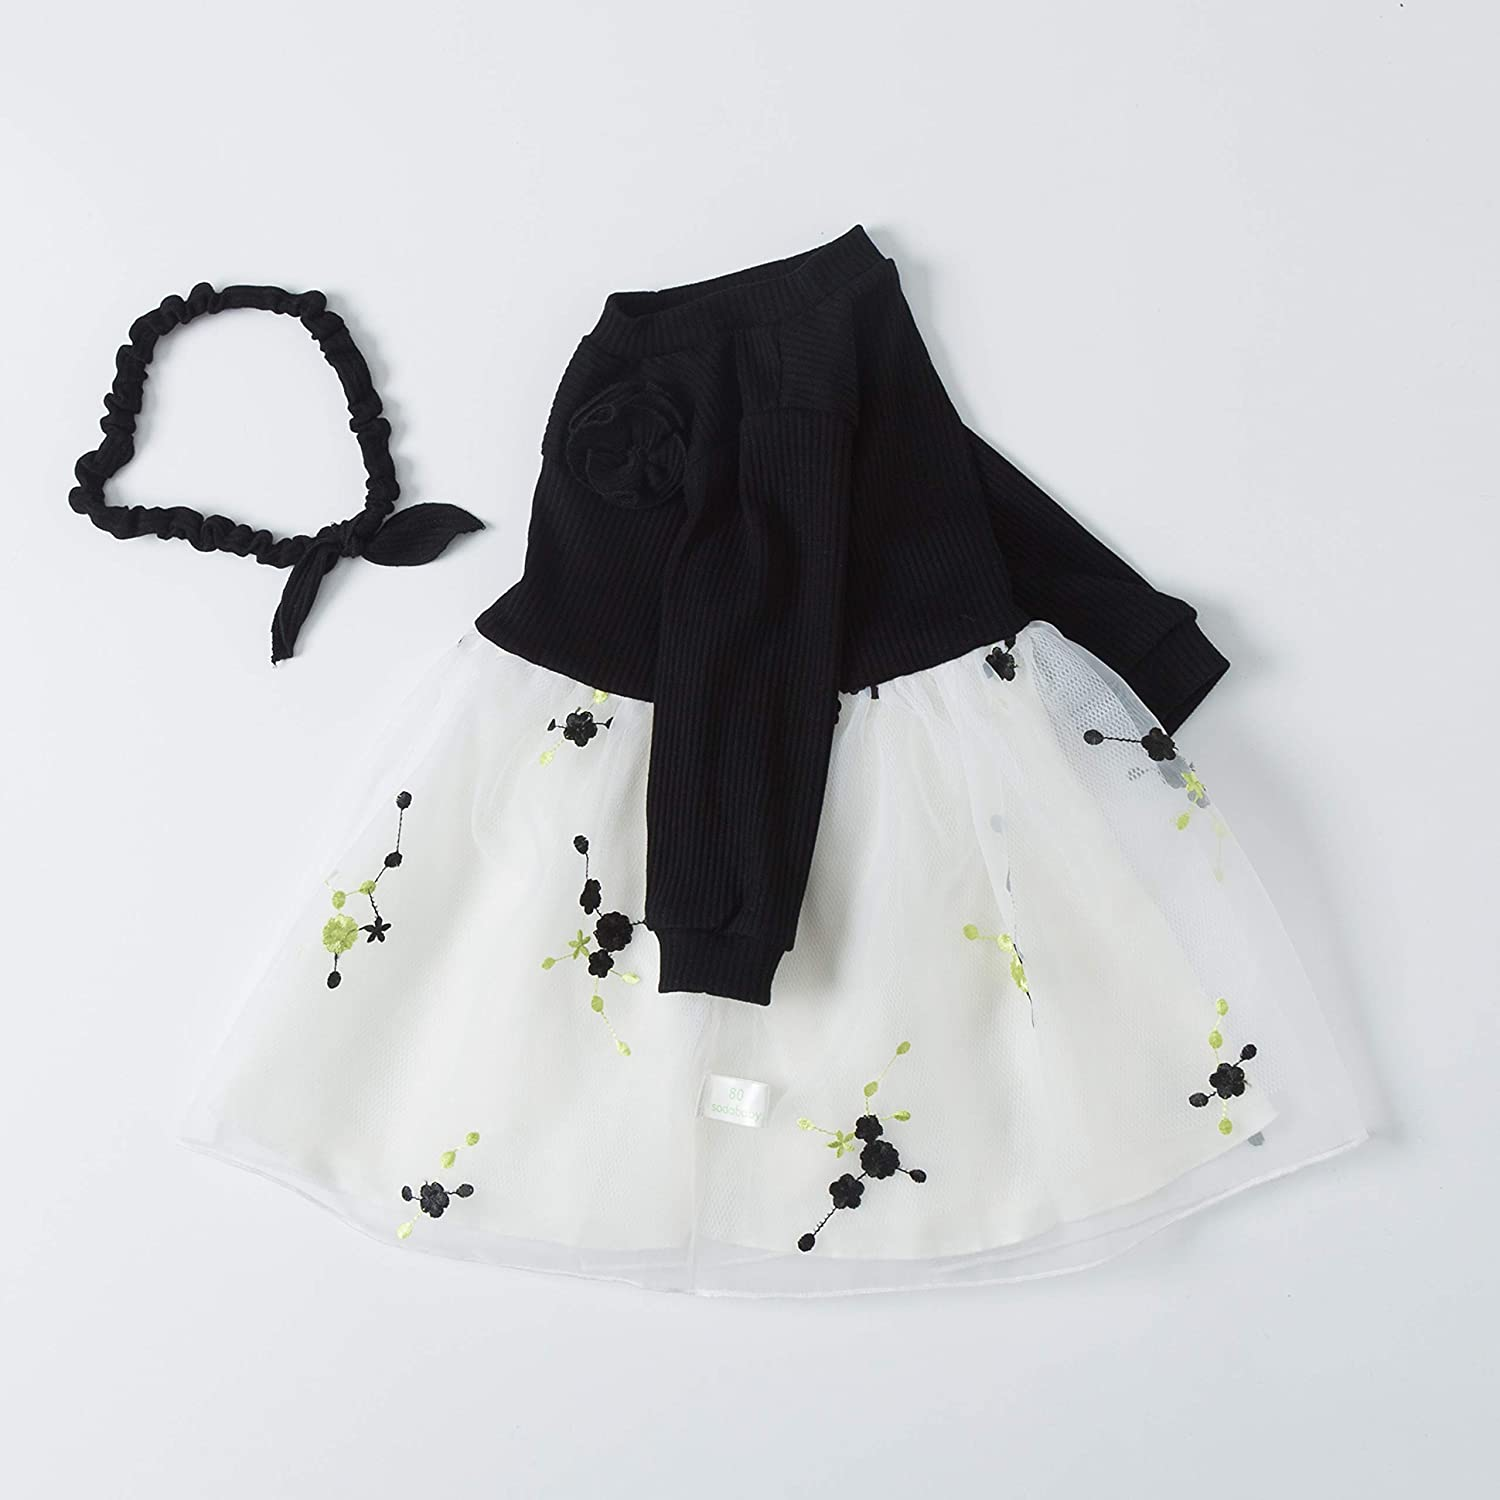 Baby Girl Clothes 0-3 Months Newborn Outfits Lace Tutu Dresses Outfit with Headband for Infant